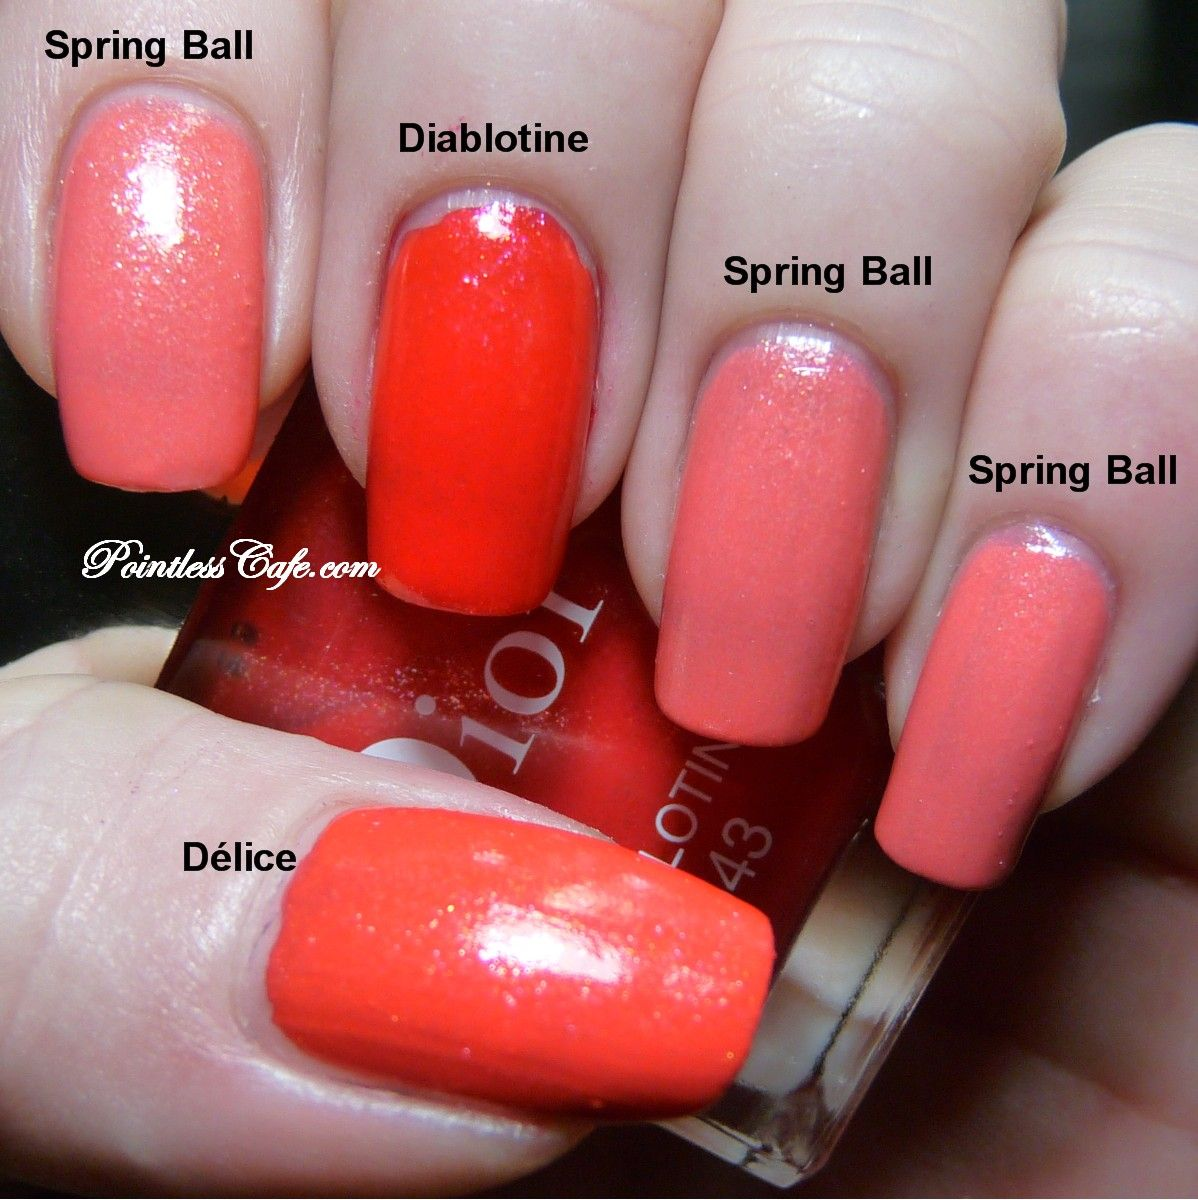 Dior Spring Ball 343 and Dior Princess 553 - with Délice and ...